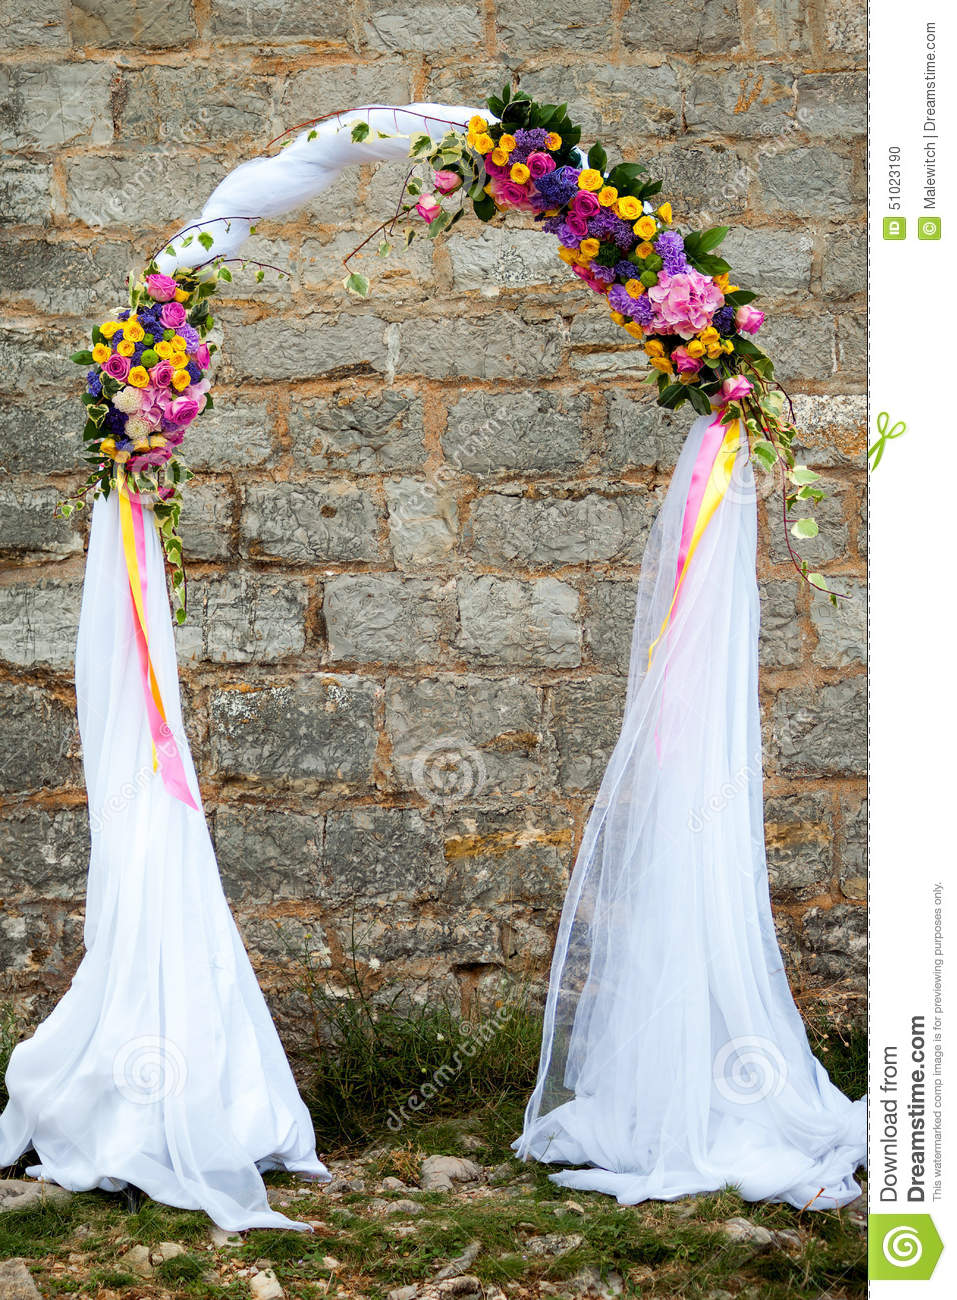 Wedding Arch Stock Photo Image 51023190